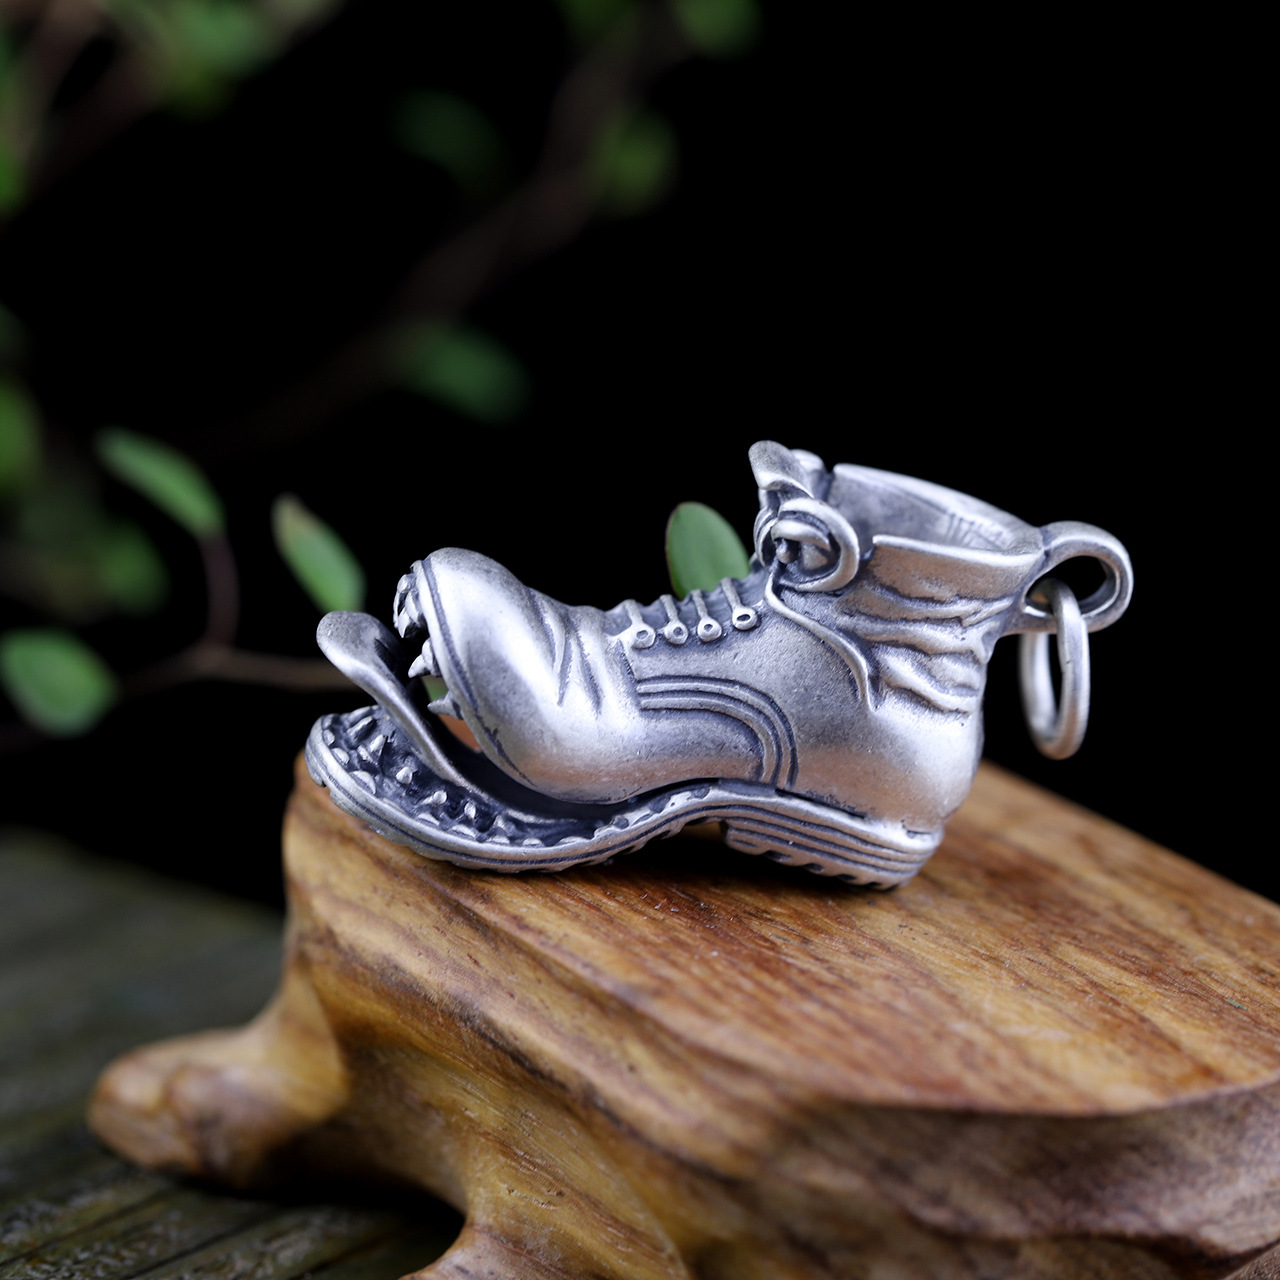 S925 pure silver ornaments Thai silver seiko men sautoir shoes pendant hip-hop personality s925 pure silver personality female models new beeswax